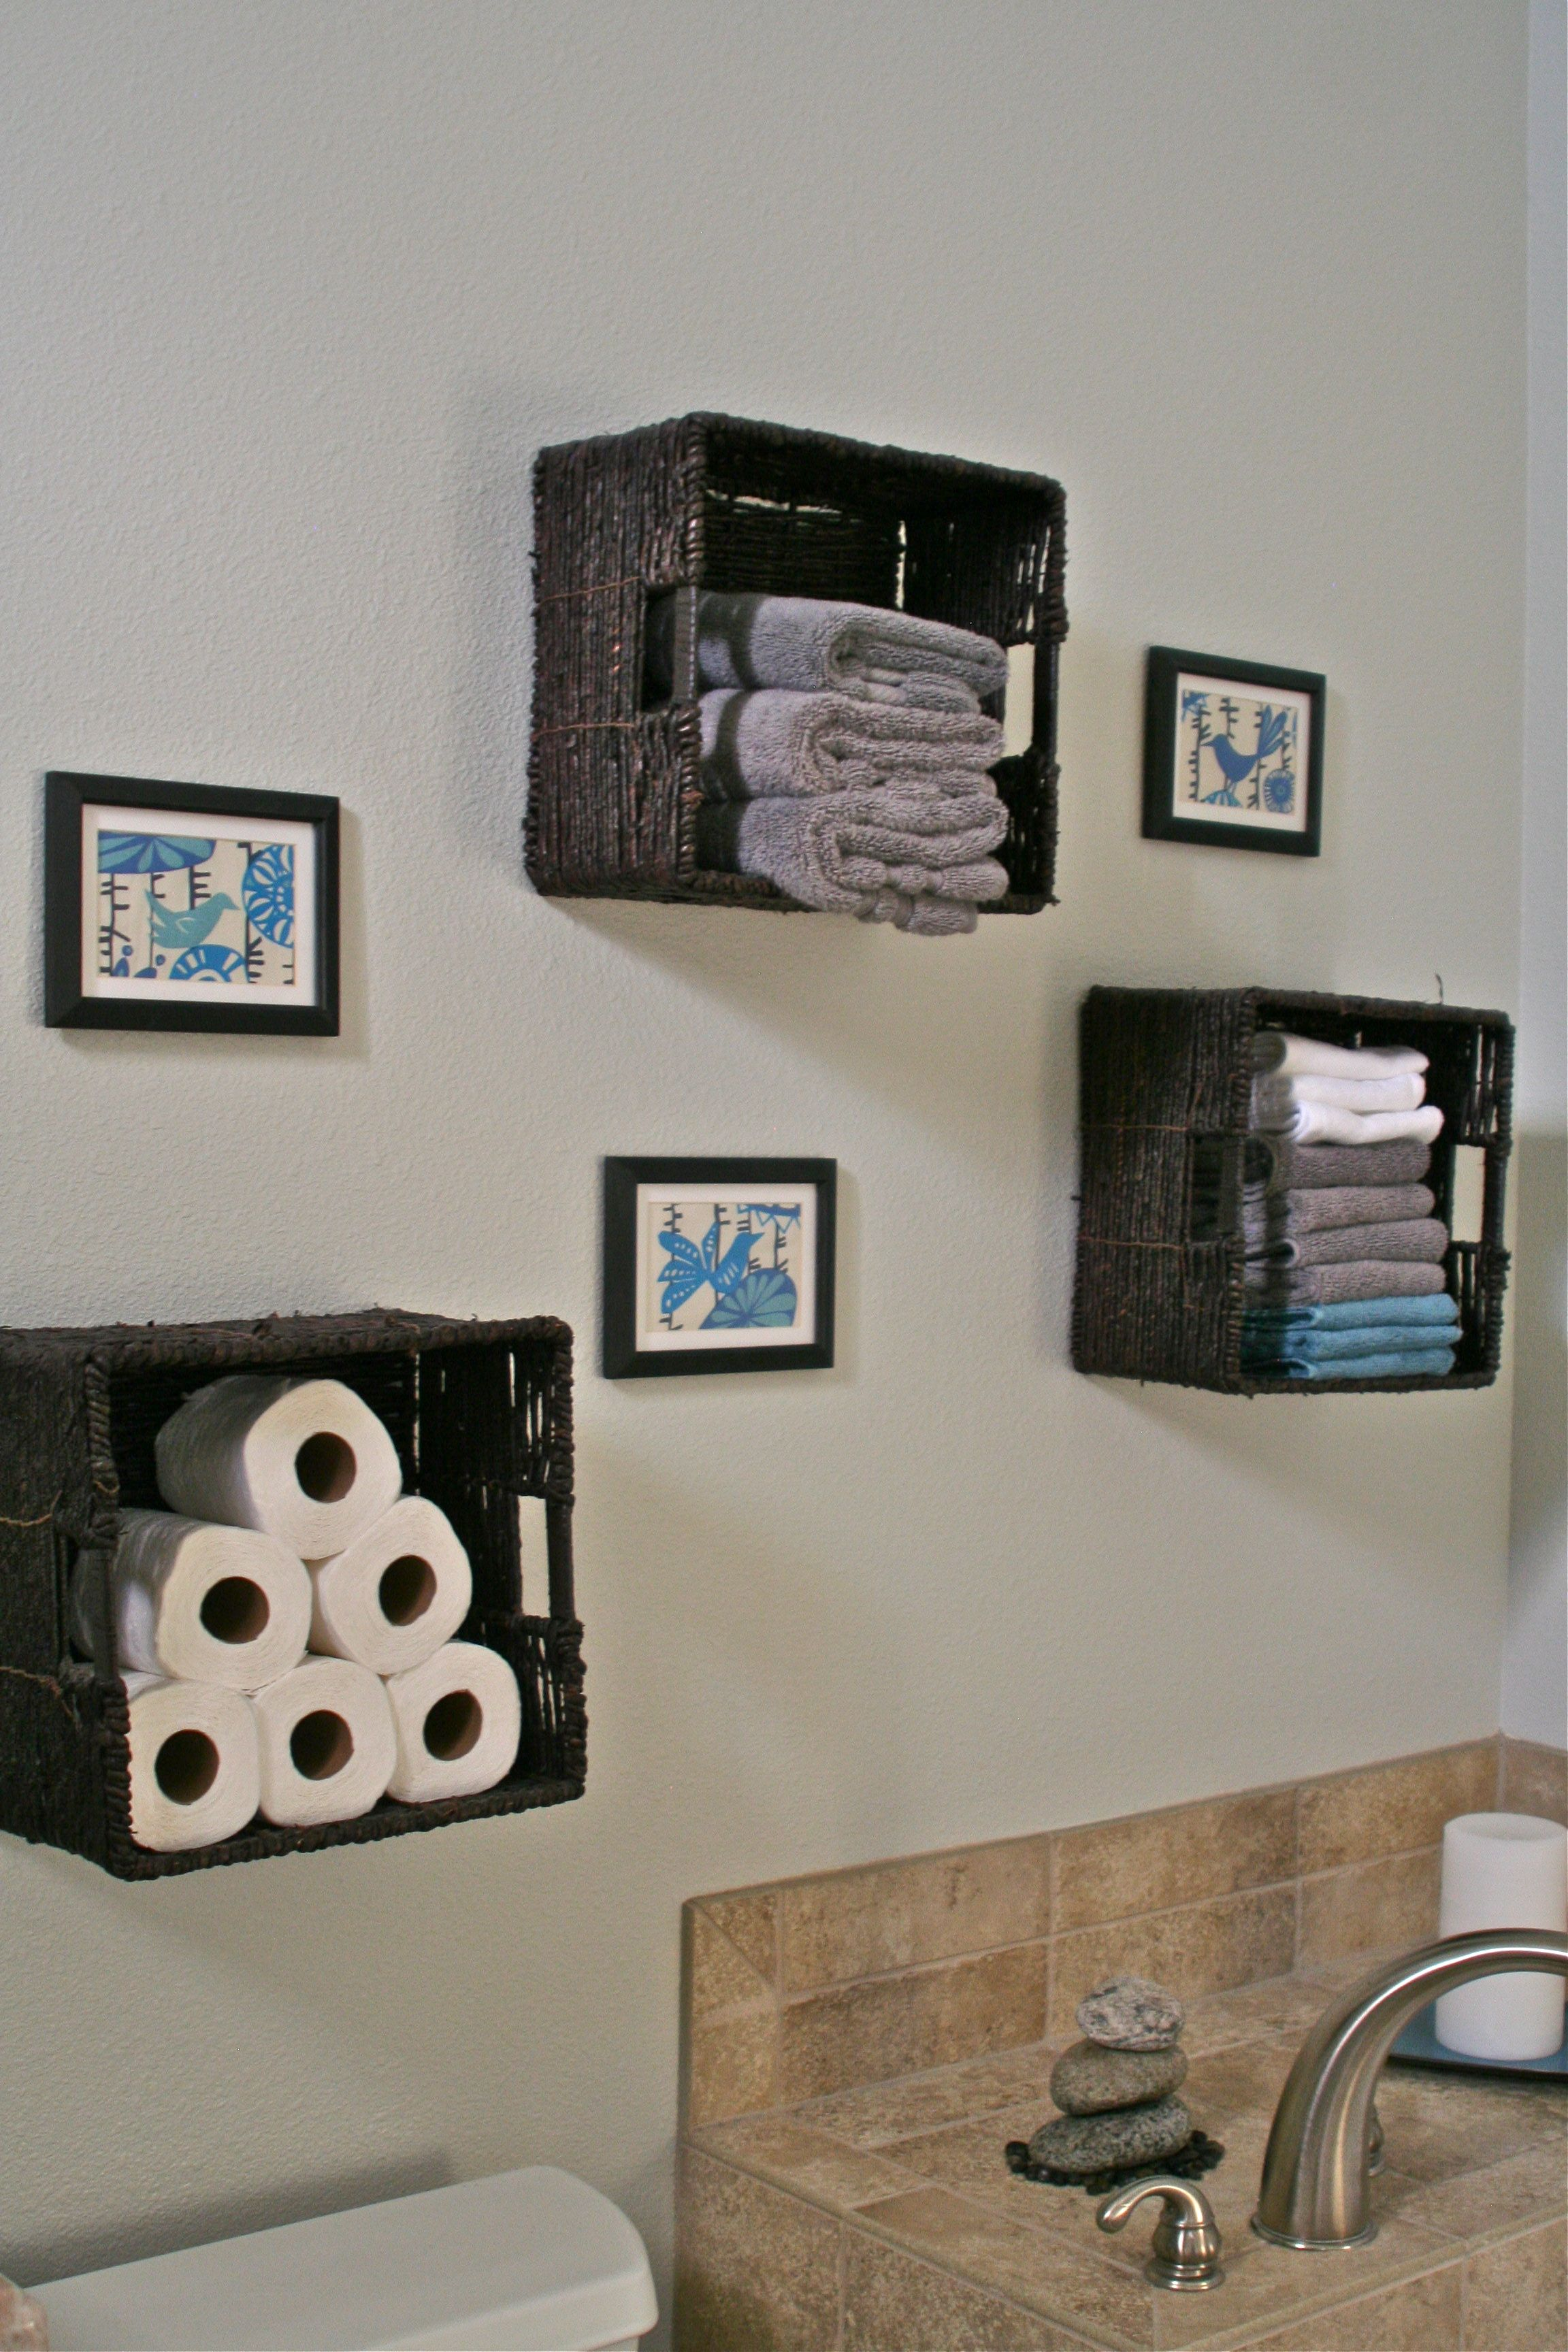 Bathroom Storage Baskets For Towels Toilet Paper Etc Love The Teal